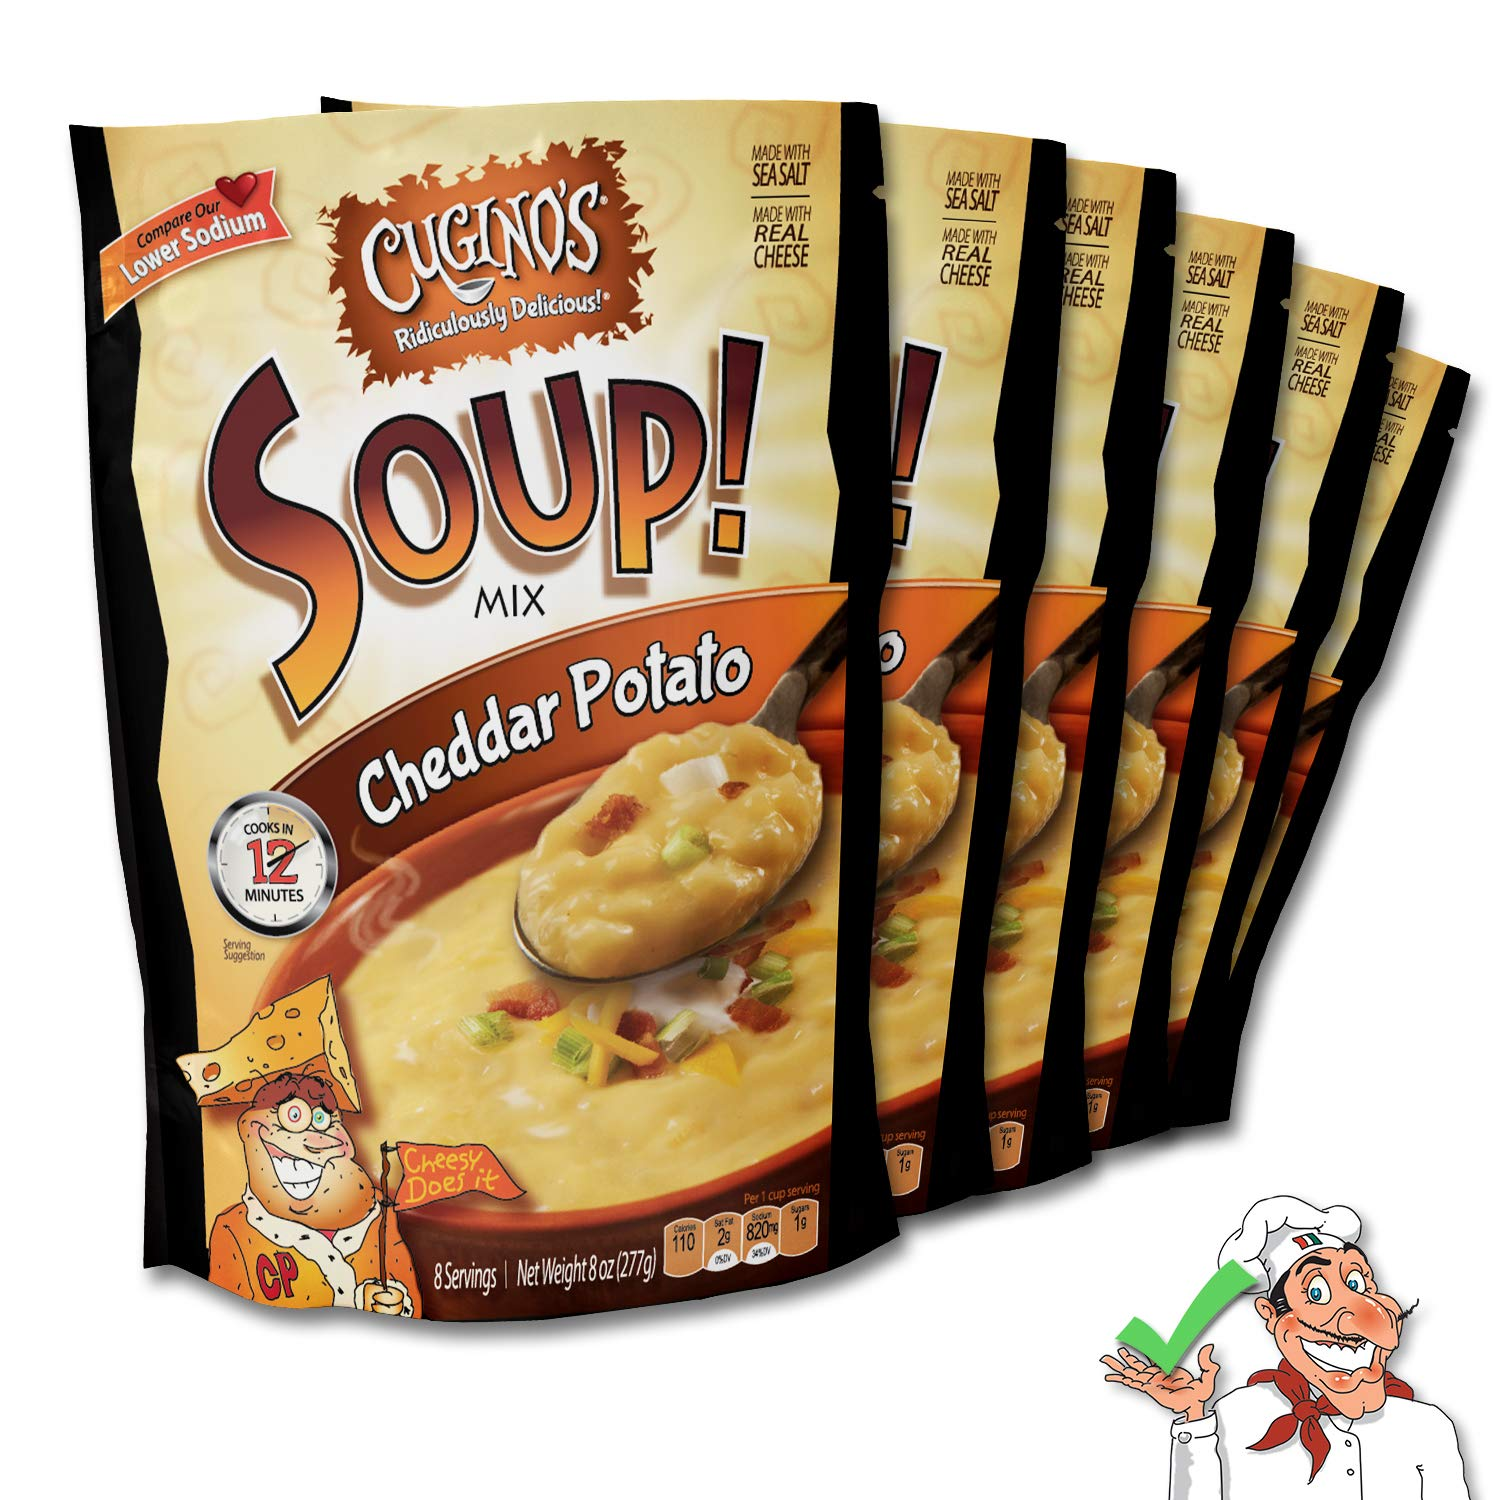 Cugino's Cheddar Potato Soup Mix, 6-Pack